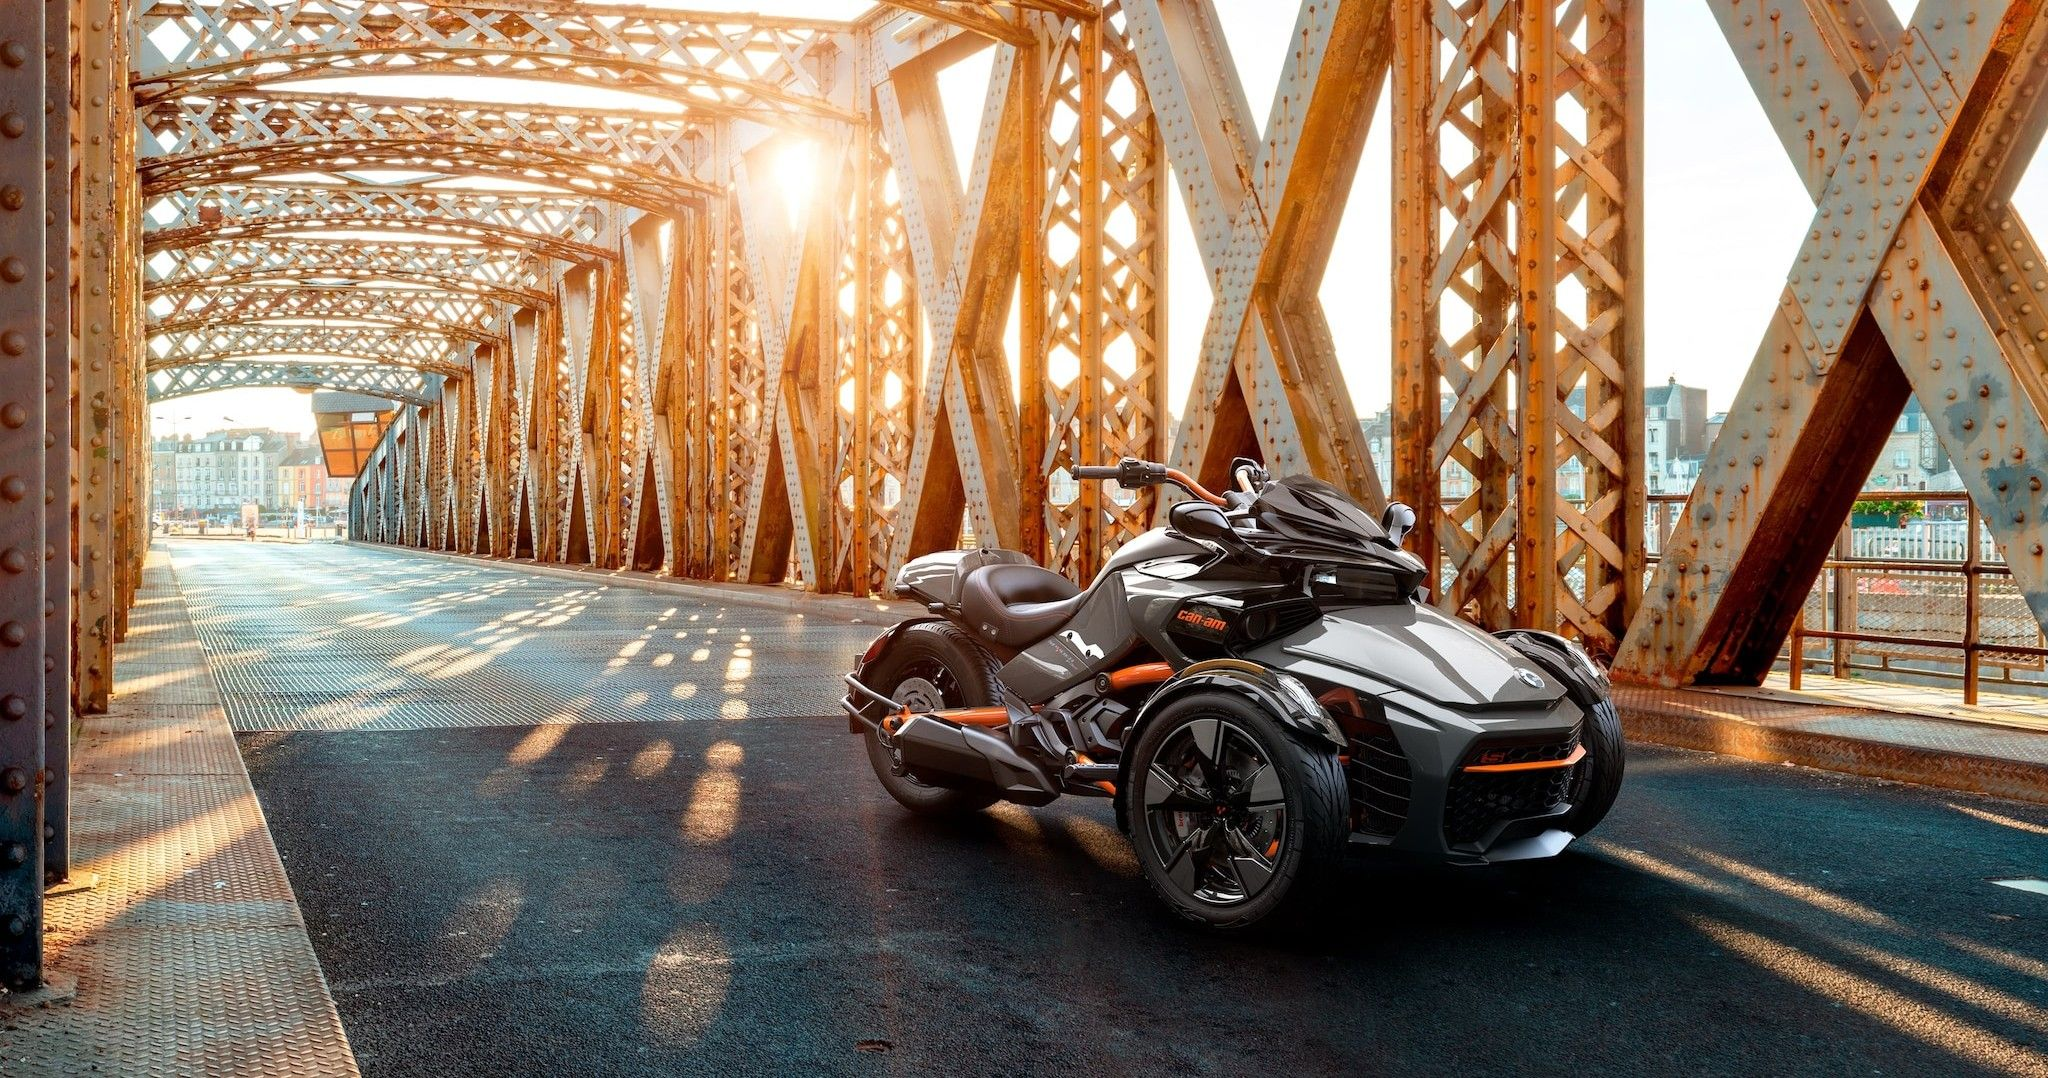 Is the Can-Am Spyder The Ultimate Three-Wheeled Vehicle?